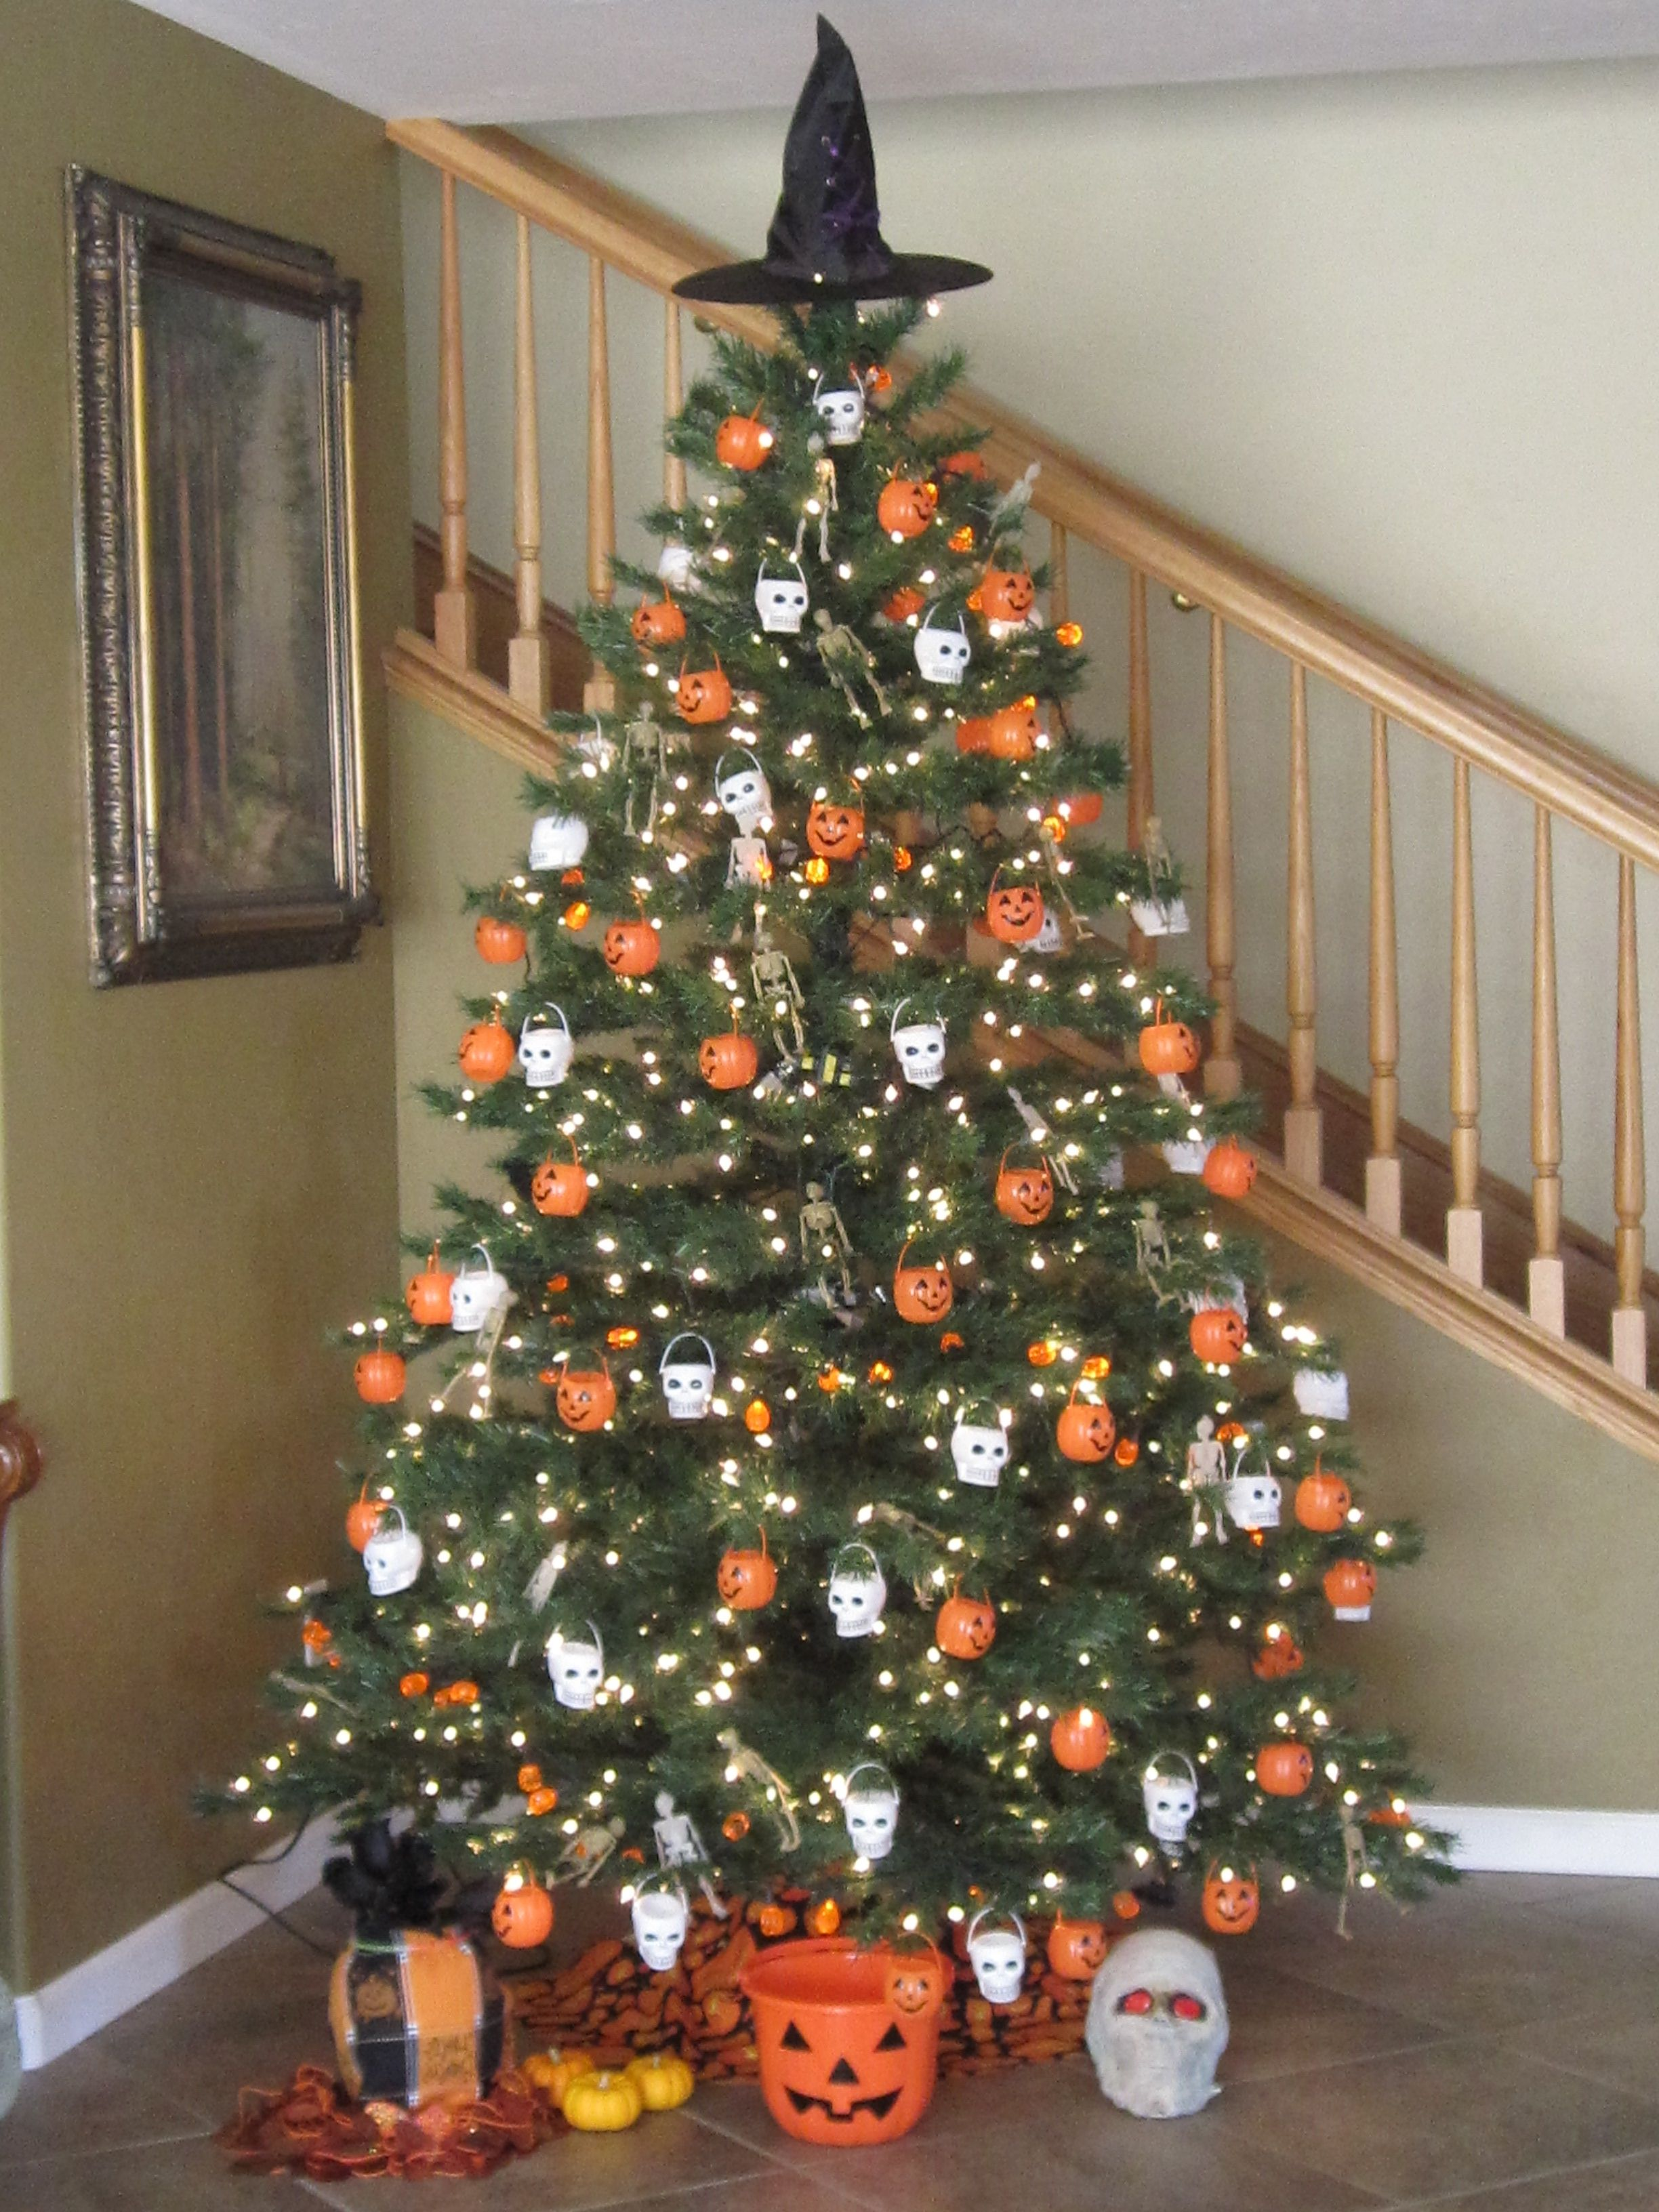 Halloween Christmas Tree.Halloween Tree Put Up Before Christmas If You Ve Got A Fake